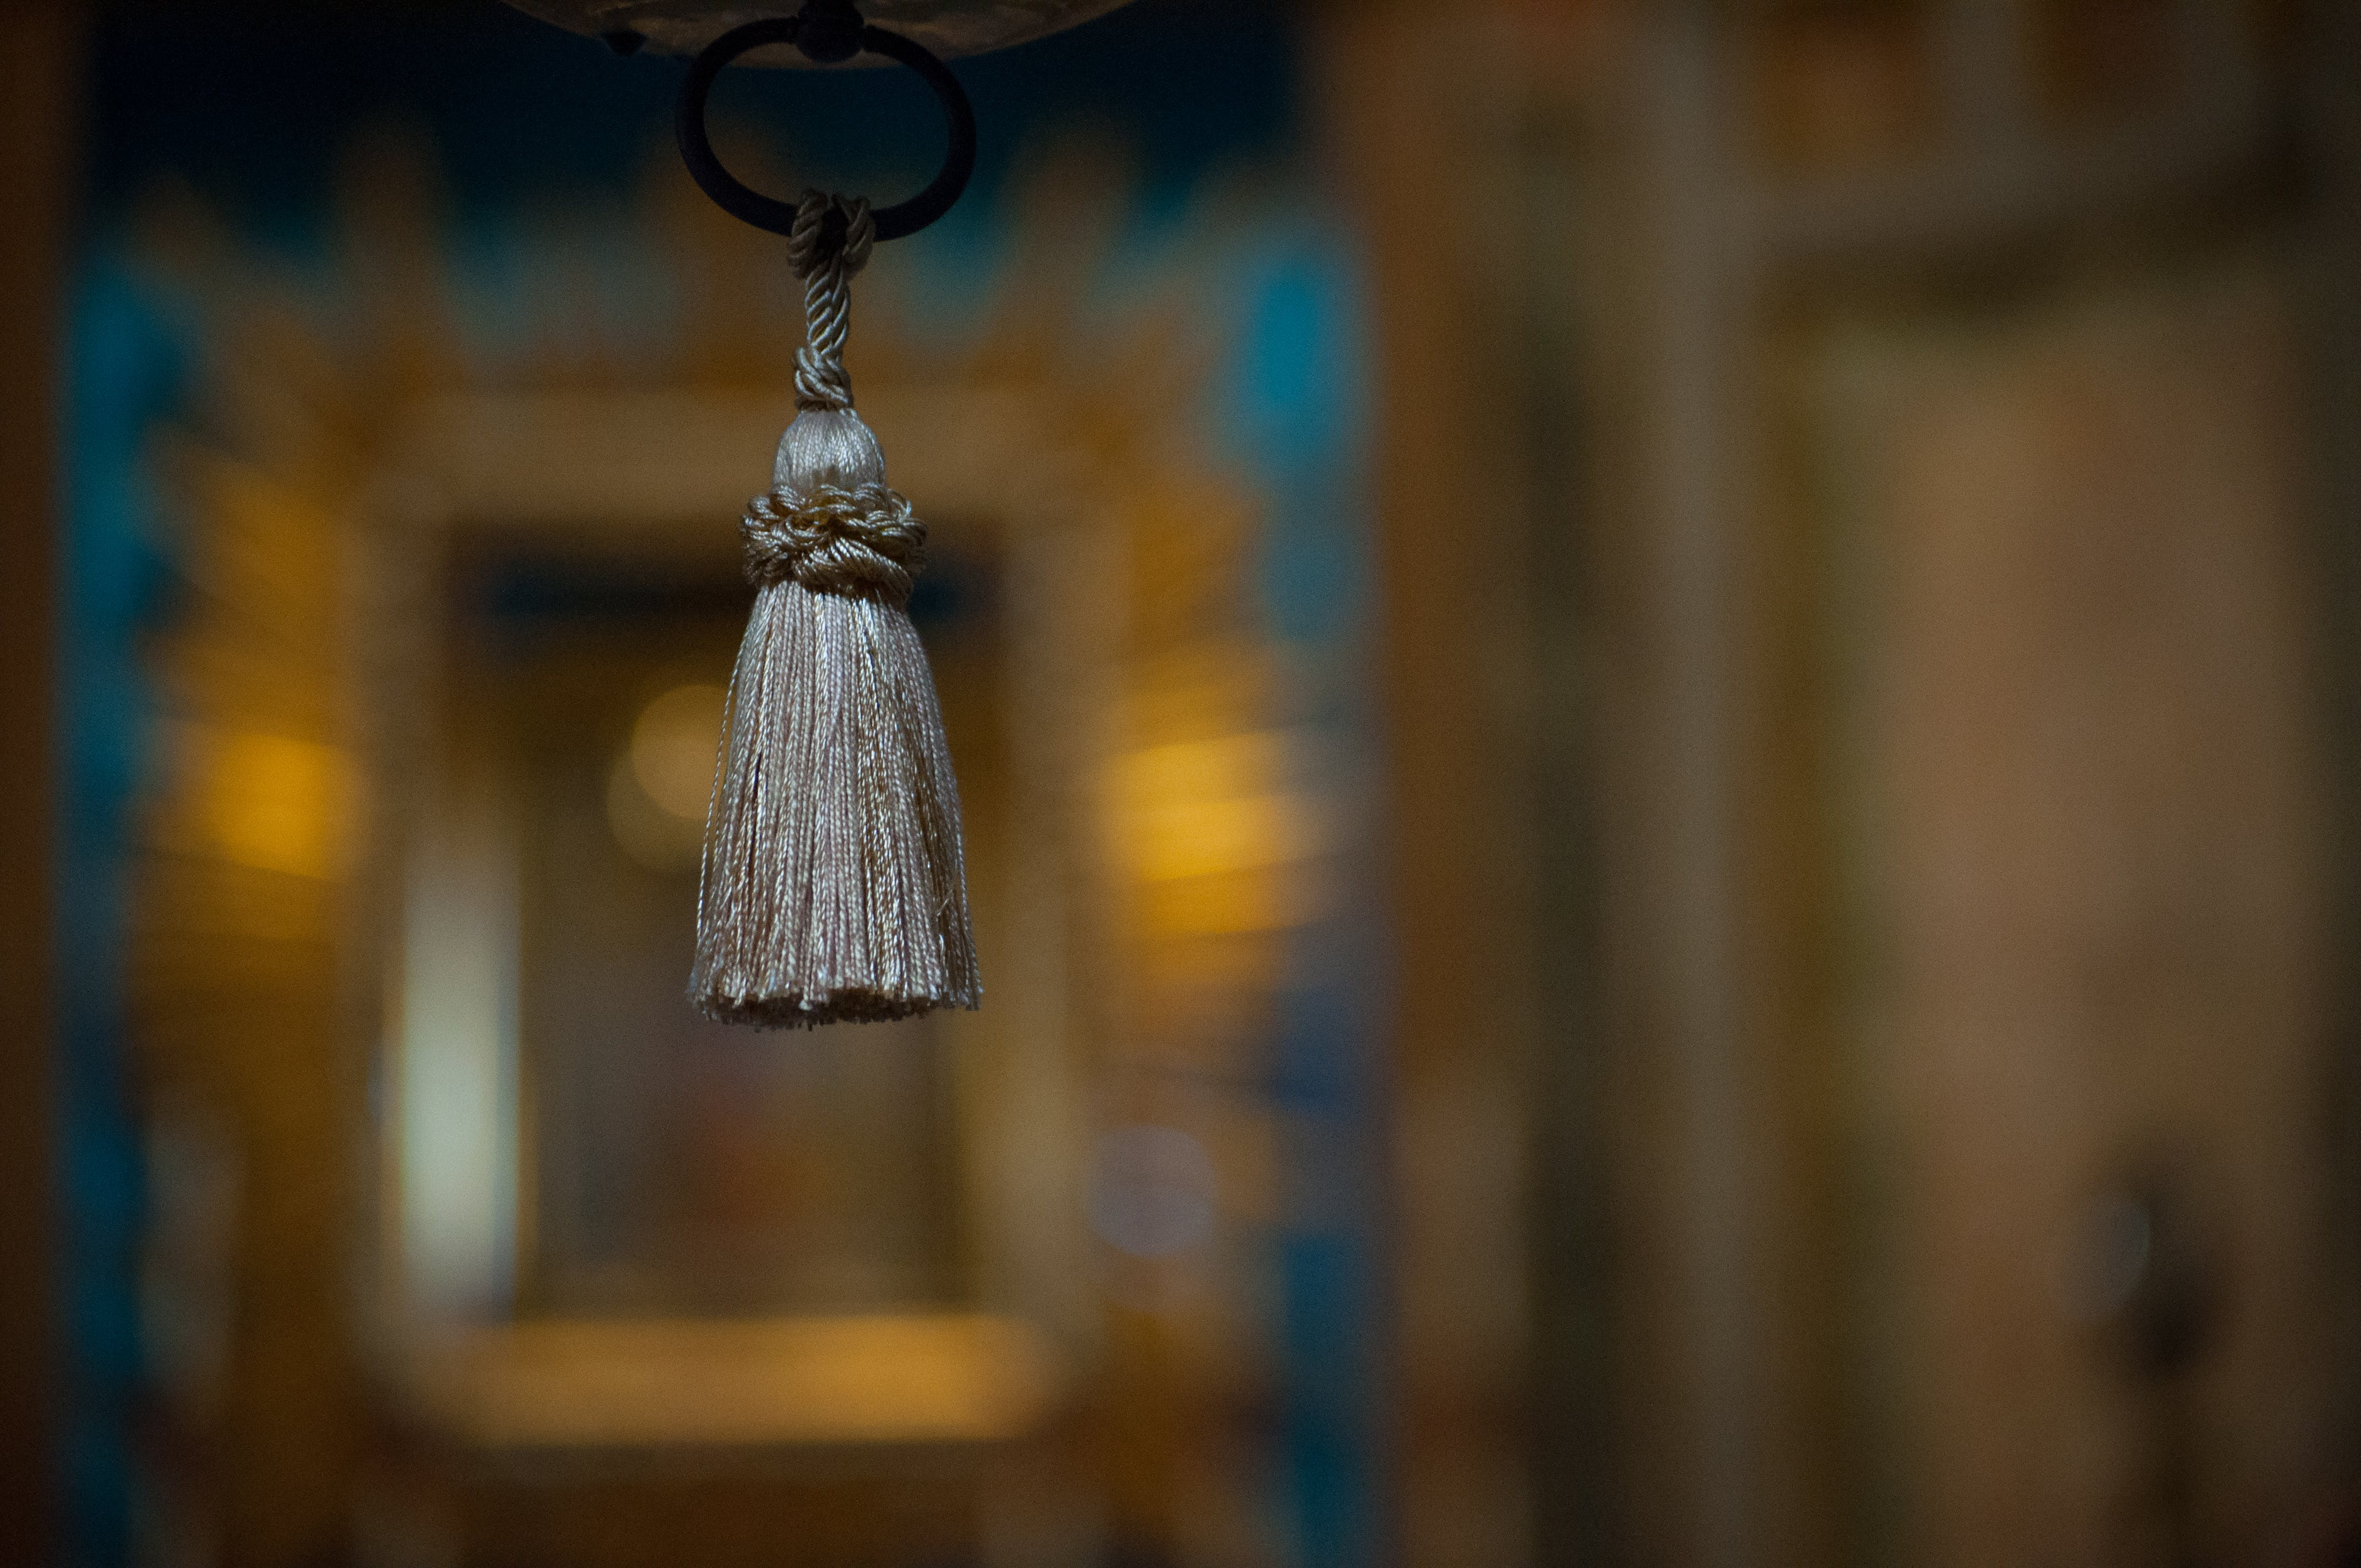 Selective Focus Photograph of Gray Tassel Accessory